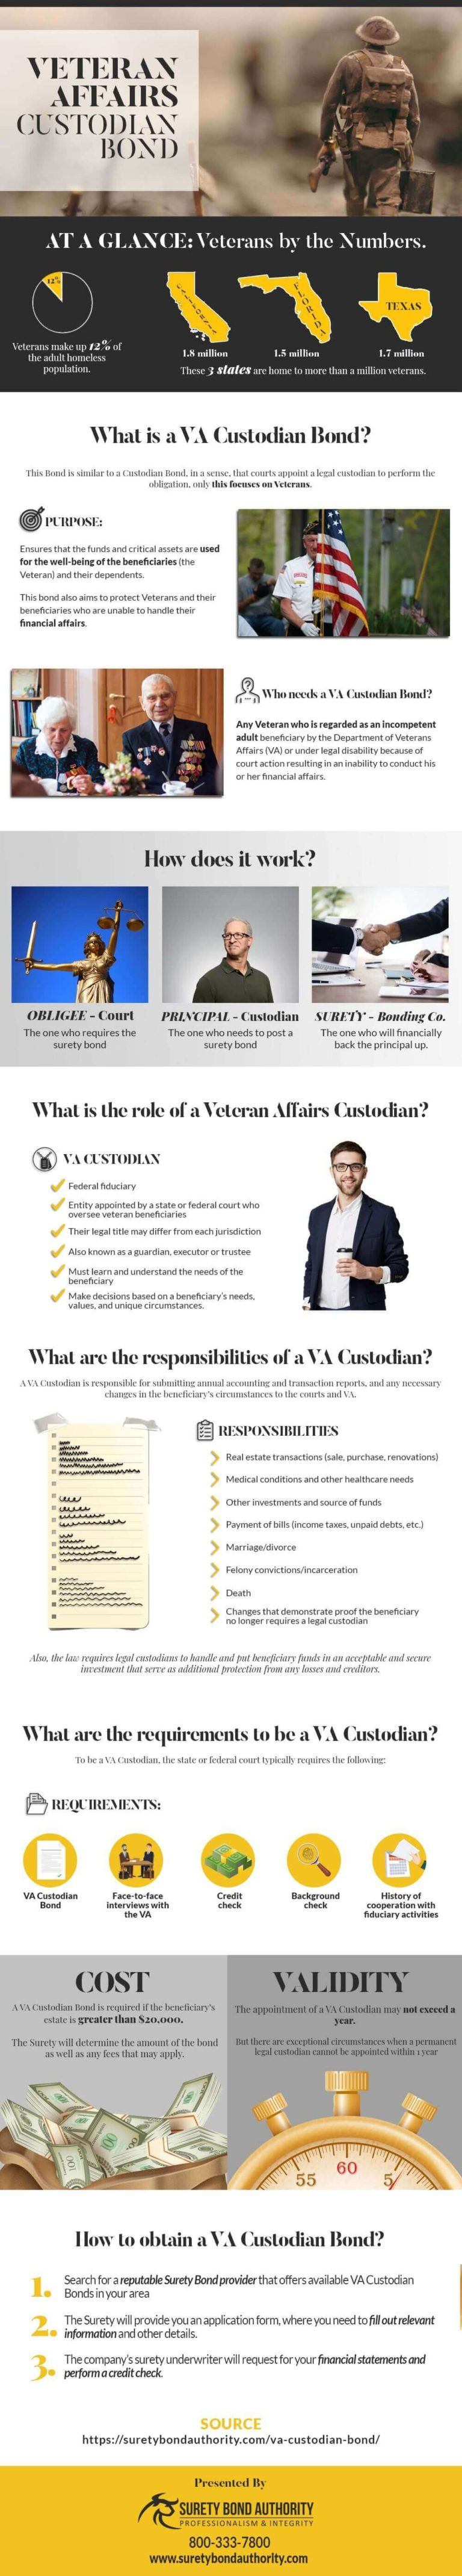 VA Custodian Bond Infographic